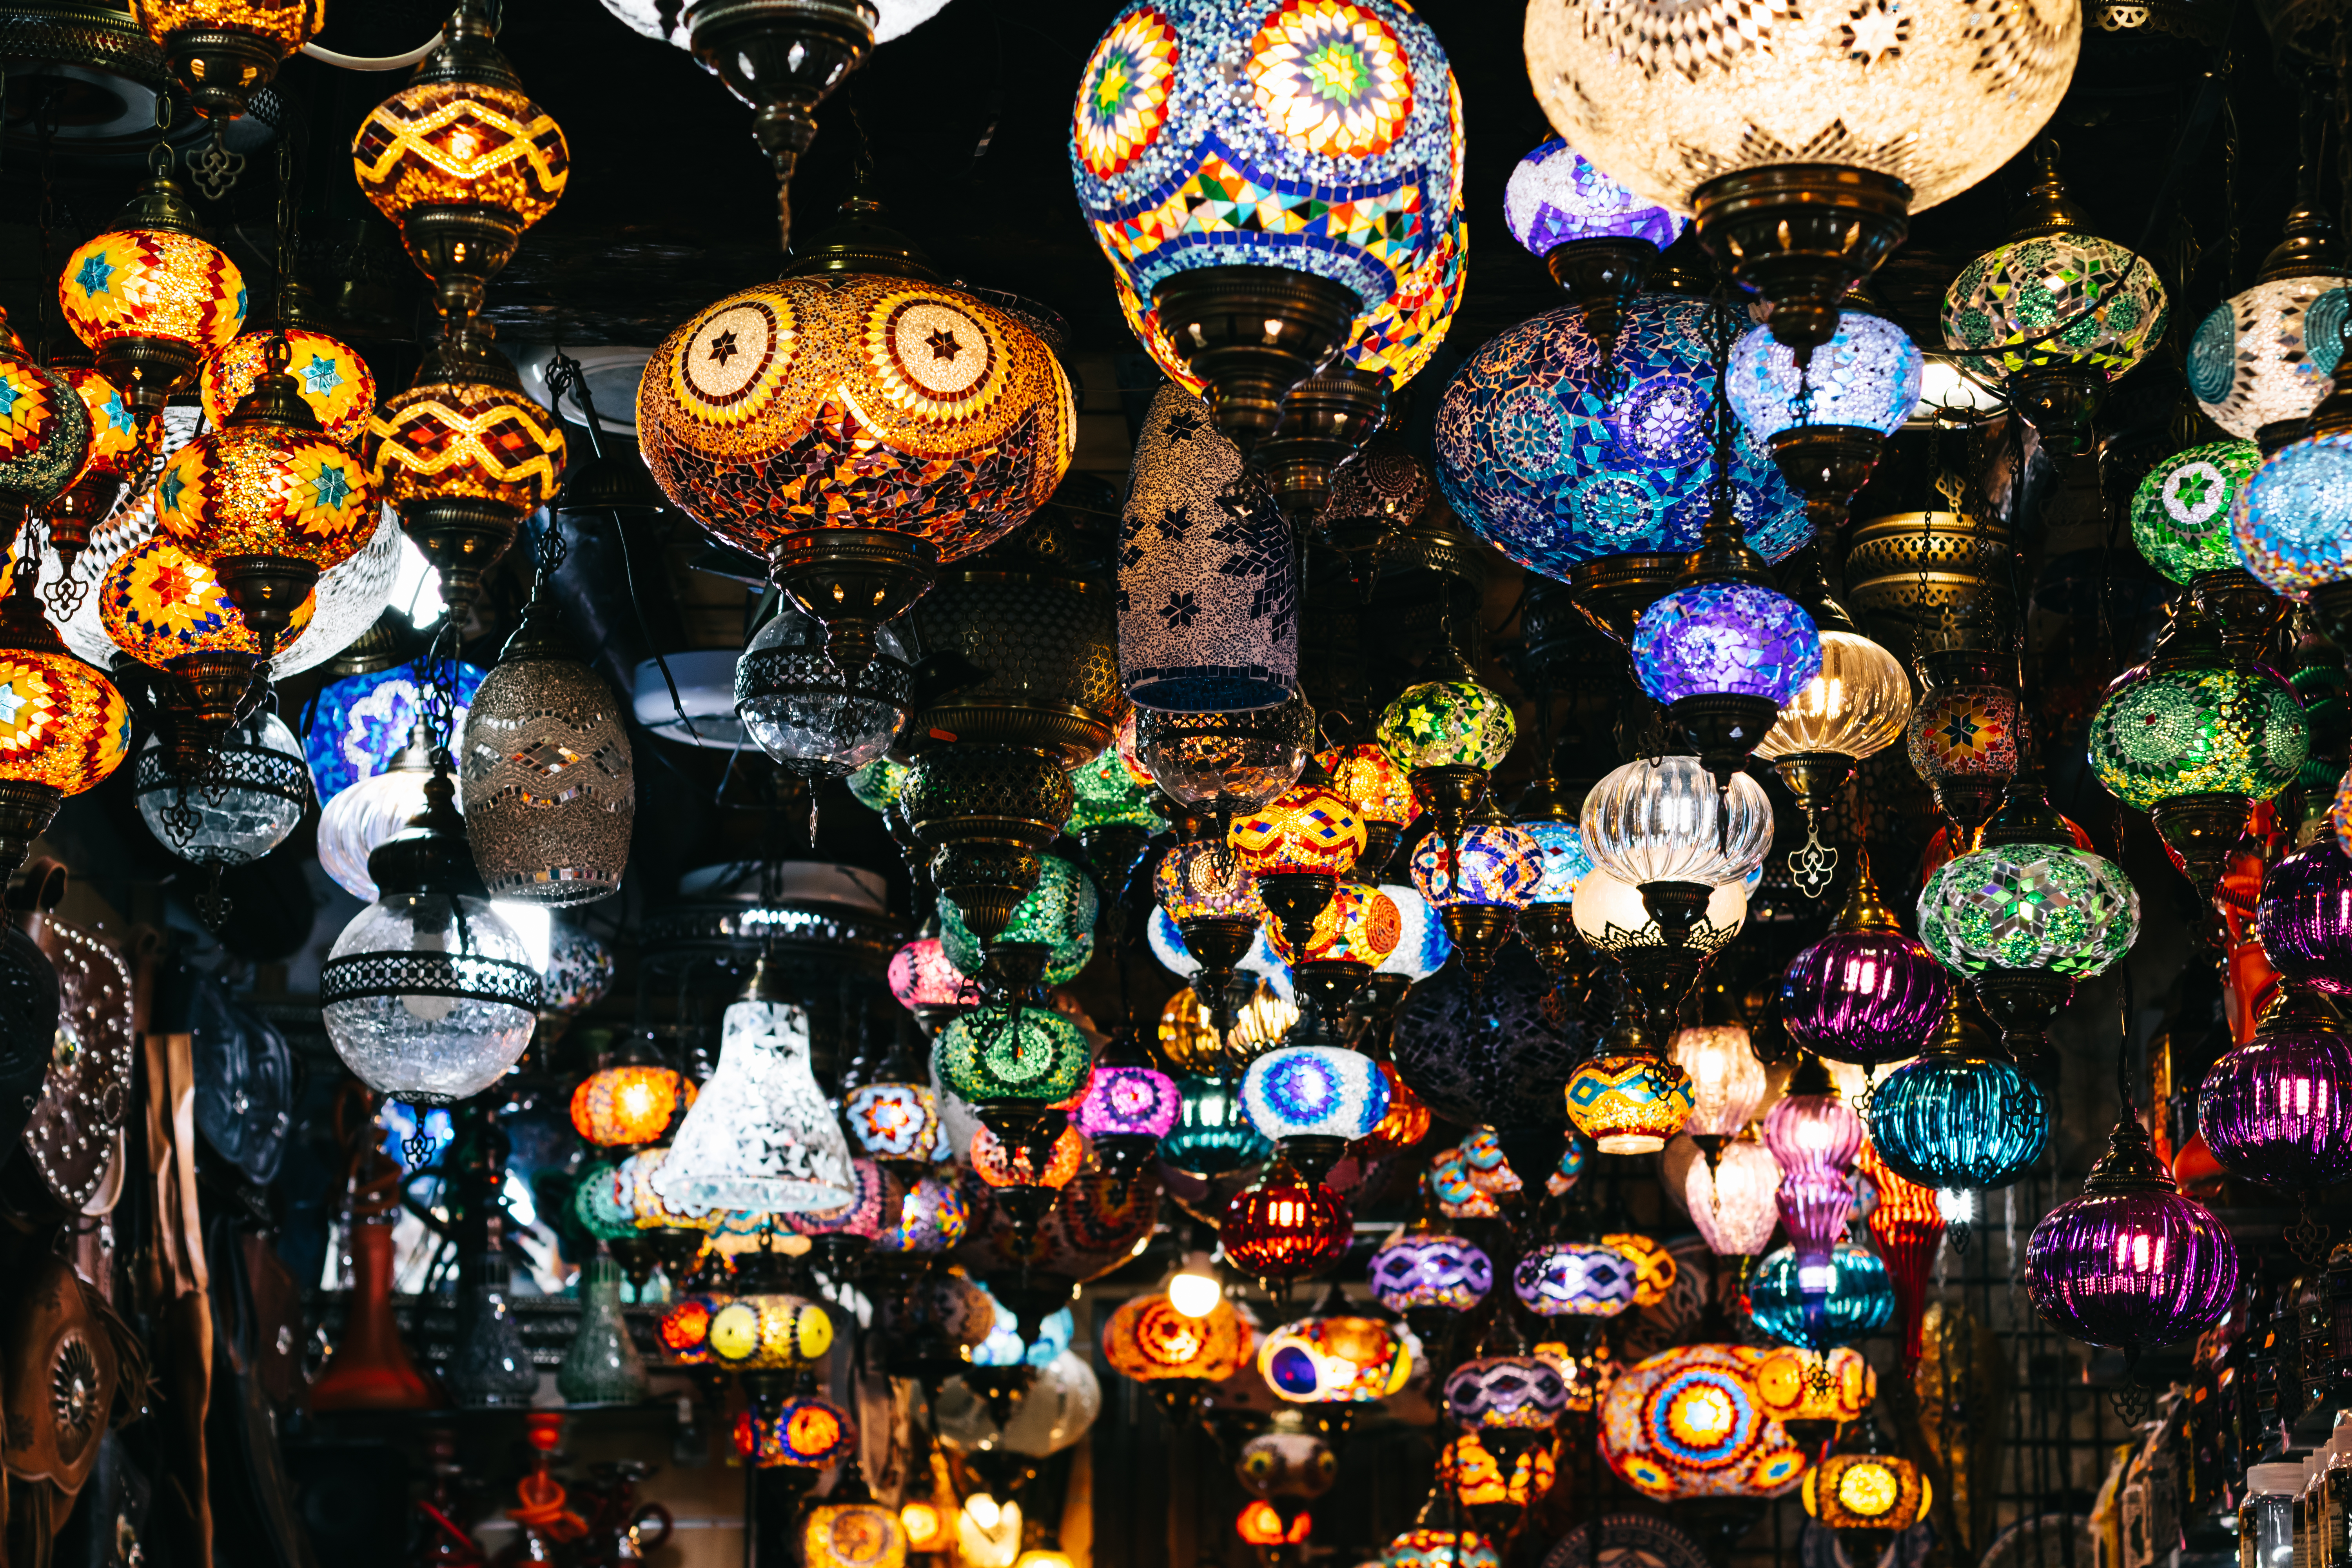 Moroccan or Turkish mosaic lamps and lanterns background; selective focus